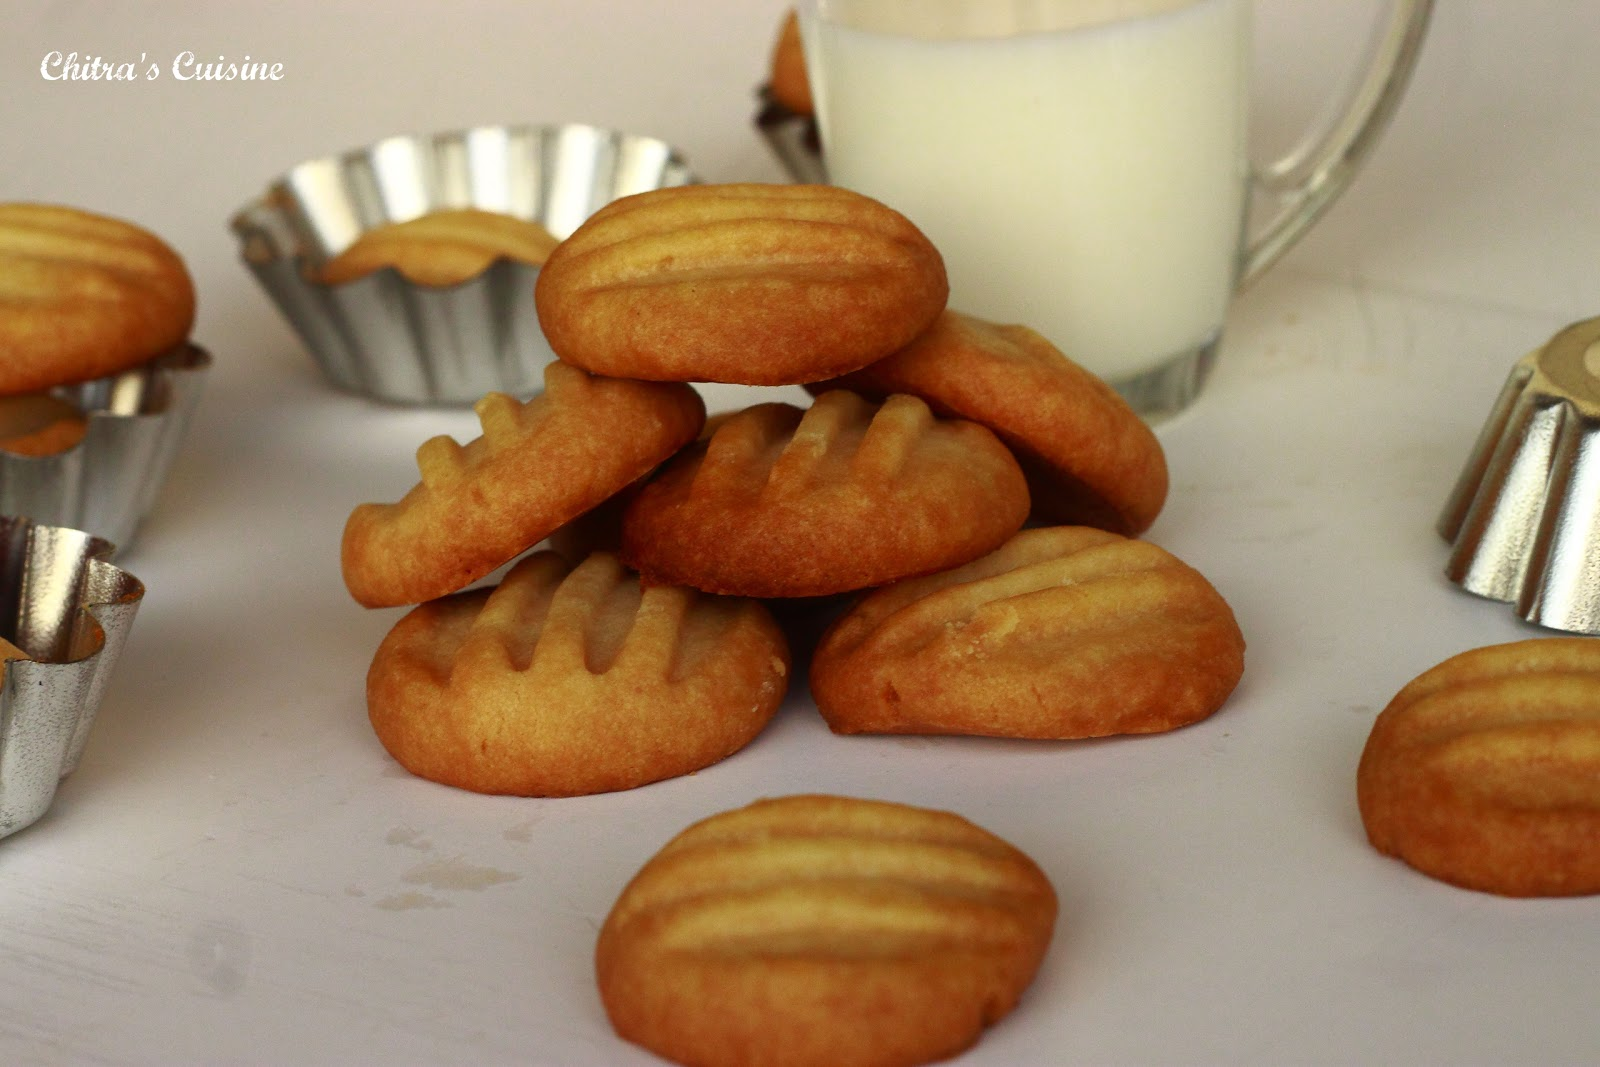 Chitra's Cuisine: Shortbread Cookies/Butter Cookies